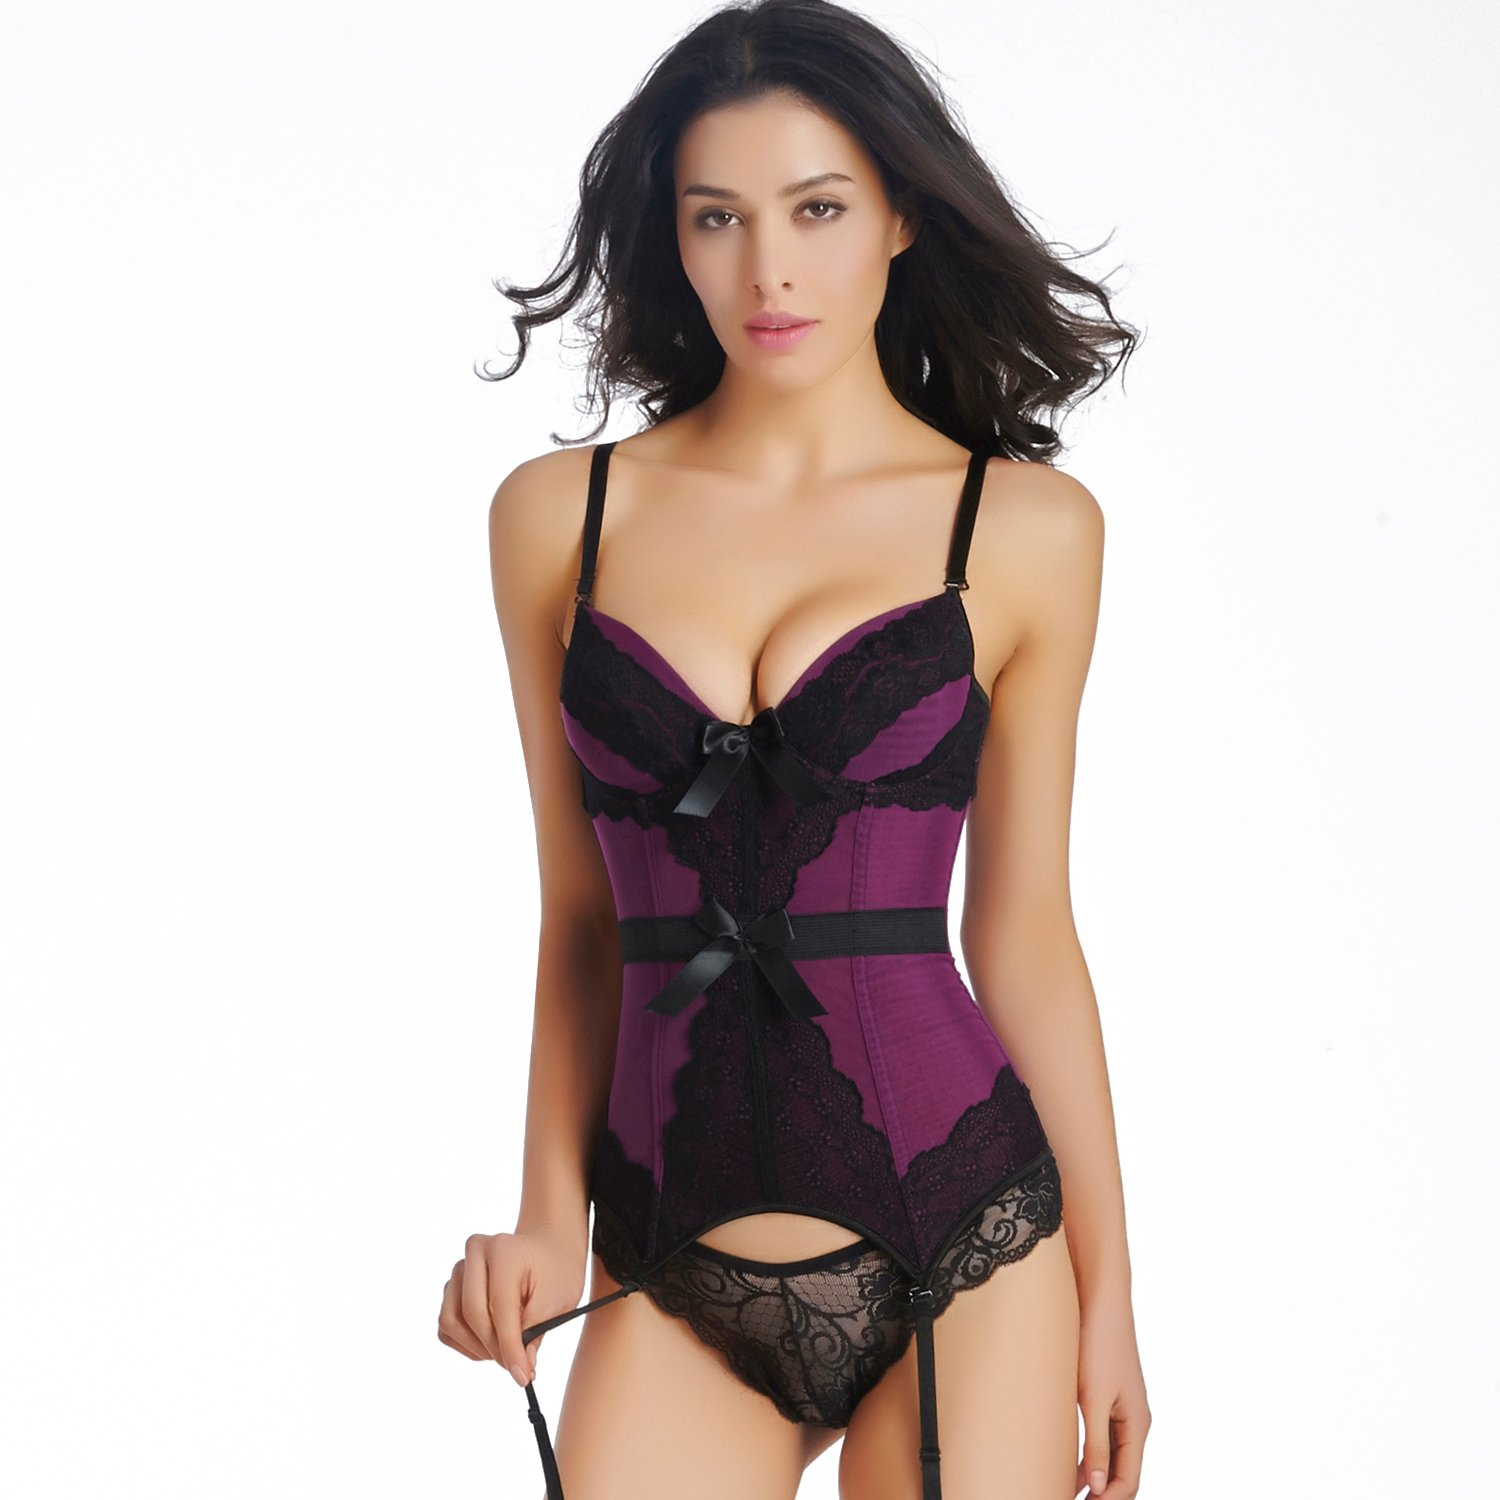 Women Sexy     Mesh   Bustier  With Bow  Purple Bustier Corset   S-XXL Size   W355503F